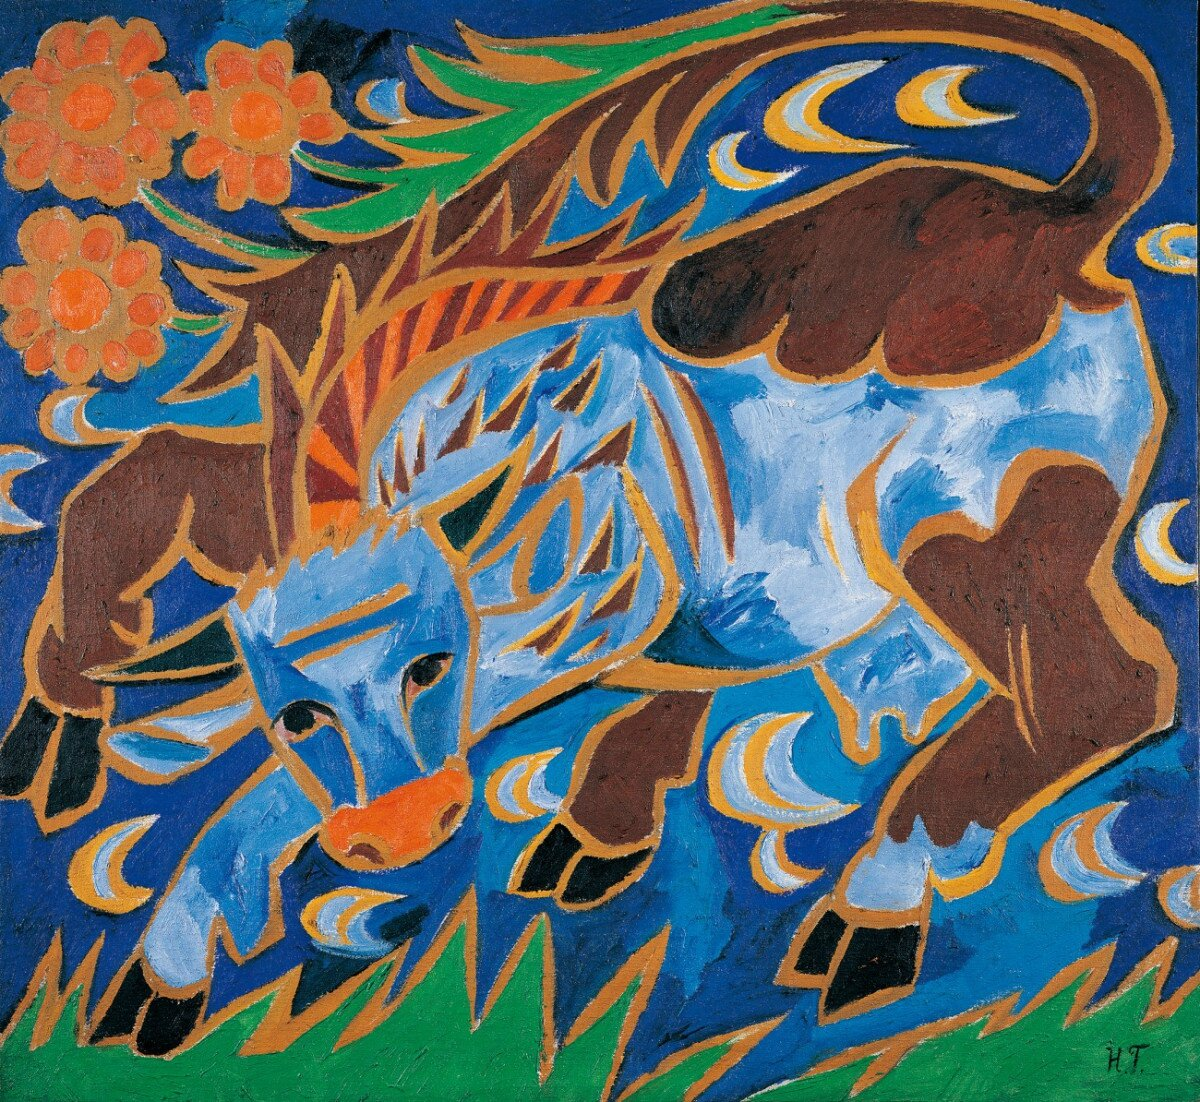 Chagall to Malevich: 130 masterpieces of the Russian avant-garde on view at the Albertina